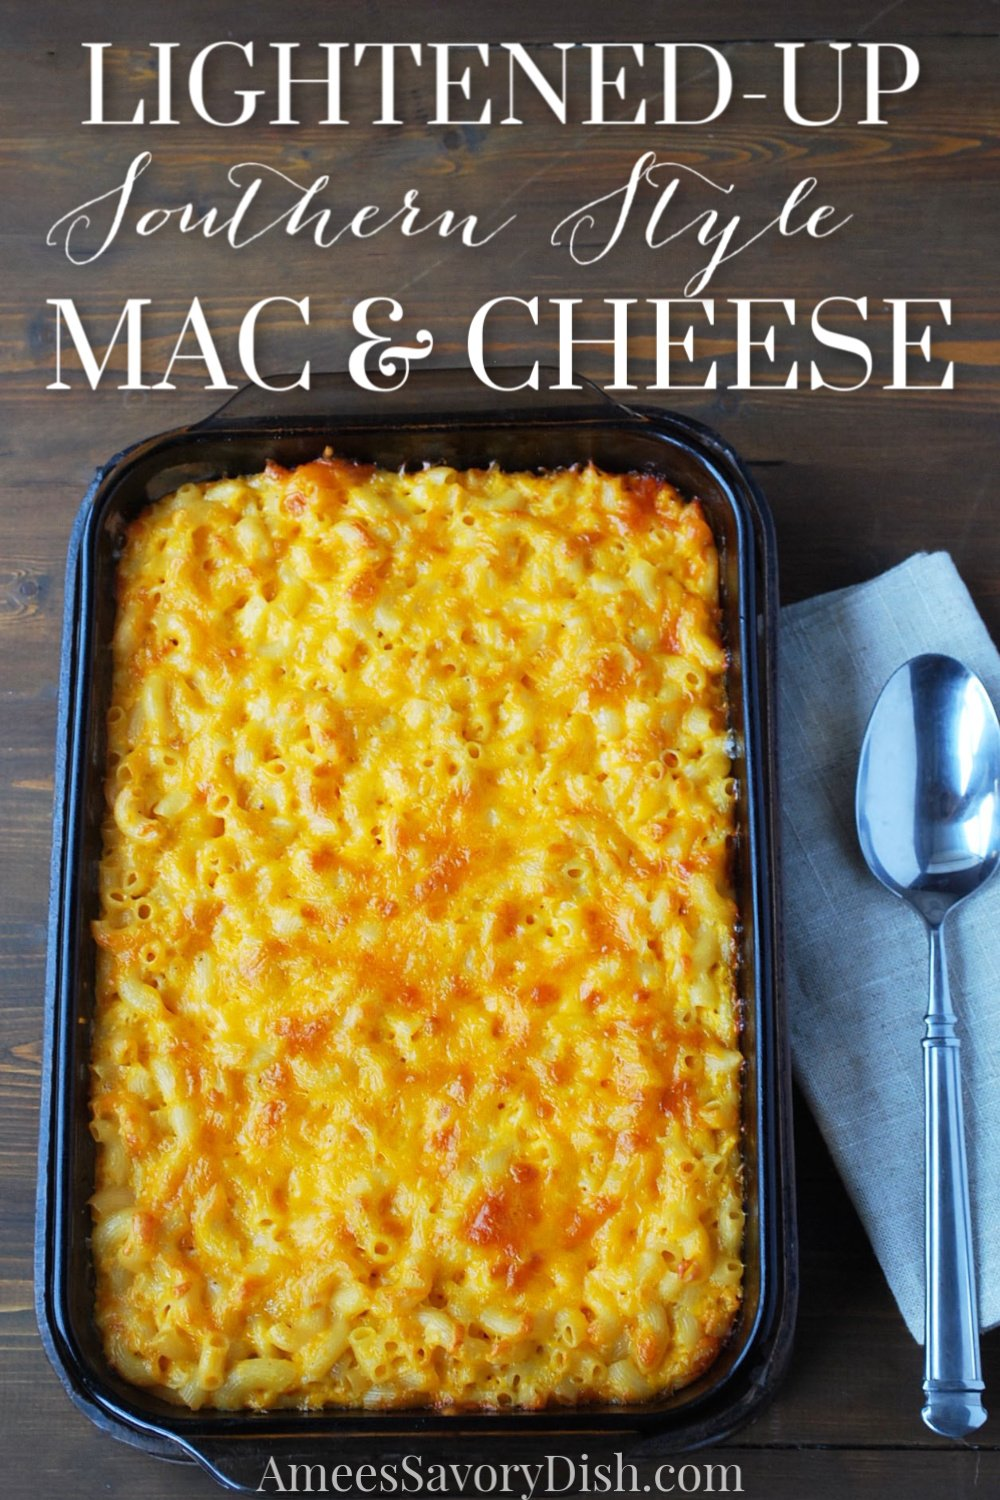 A delicious lightened-up version of decadent southern macaroni and cheese! #southerneats #southernmacandcheese #macaroniandcheese via @Ameecooks